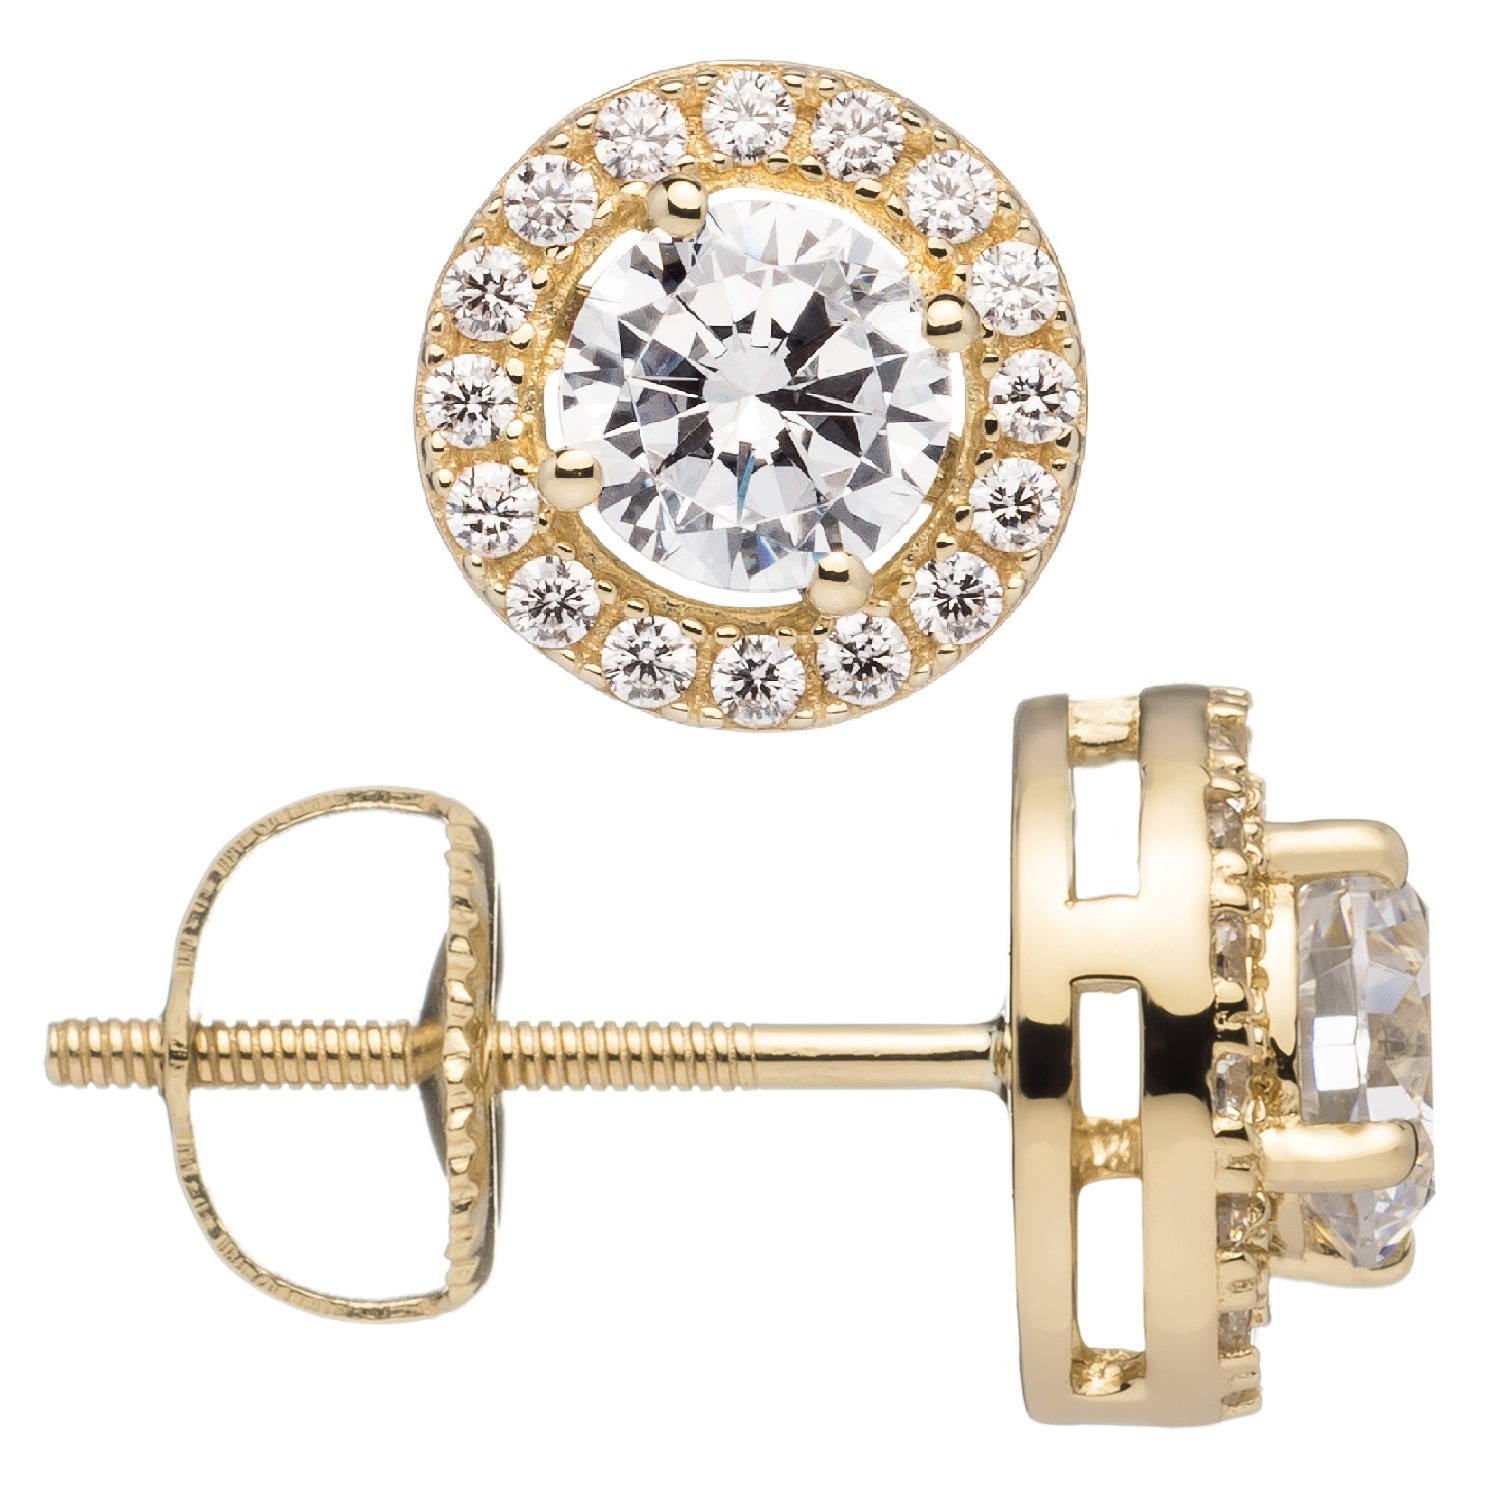 Everyday Elegance | 14K Solid Yellow Gold Stud Earrings | Round ''Halo'' Cubic Zirconia | Screw Back Posts | .48 ct center, .60 cttw each, 1.20 cttw | With Gift Box